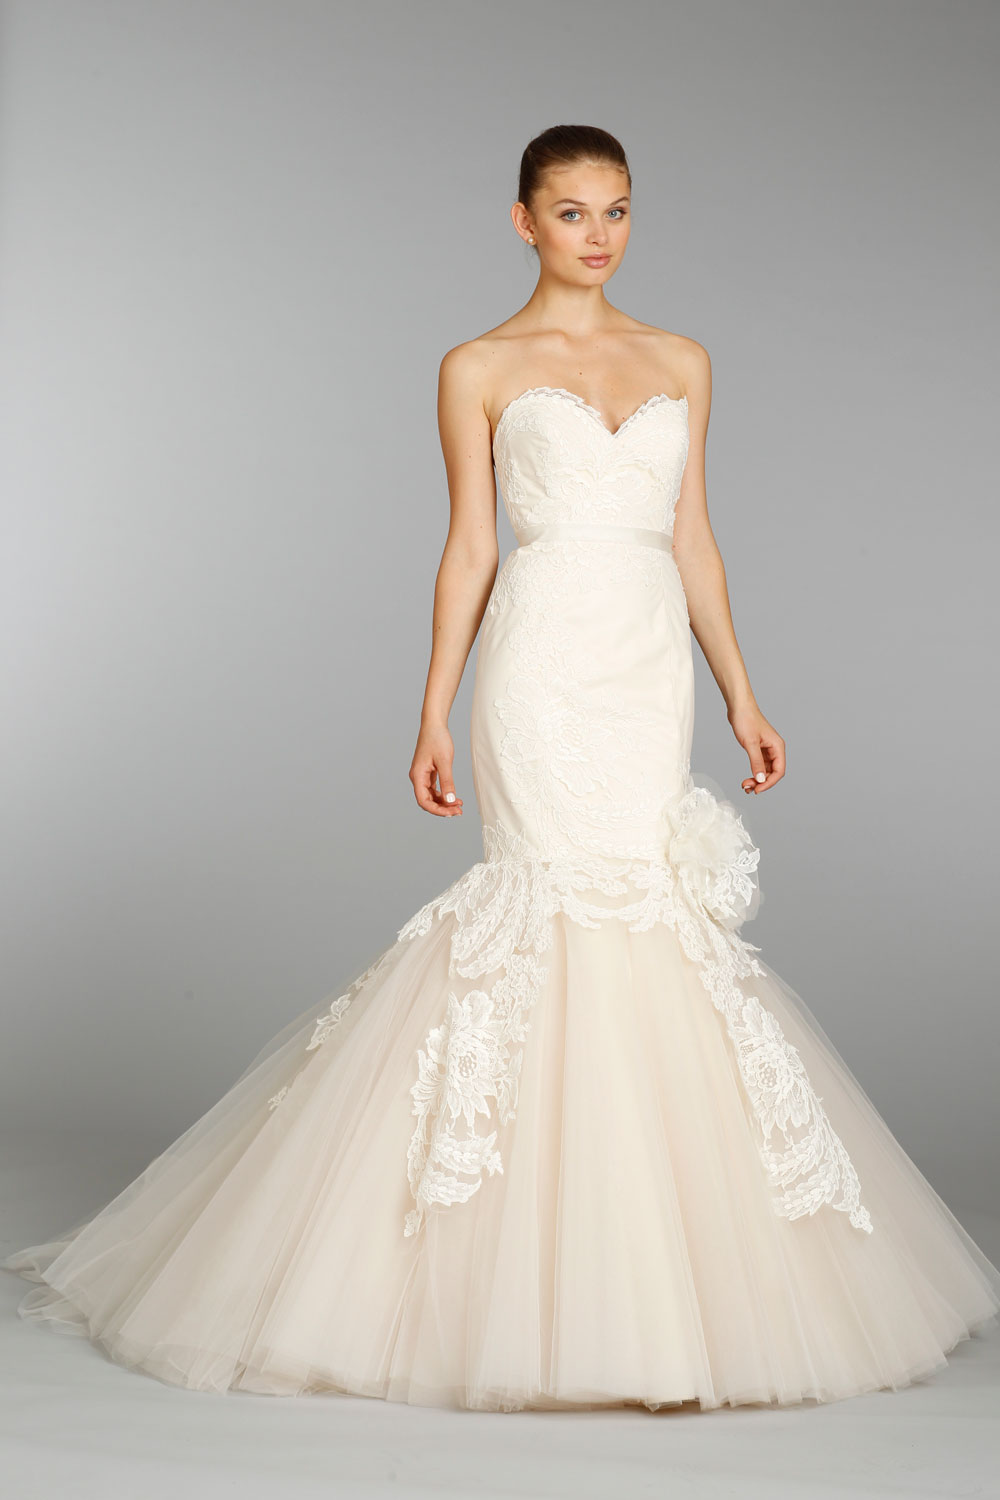 Lazaro wedding dress fall 2013 bridal 3363 for Where to buy lazaro wedding dresses